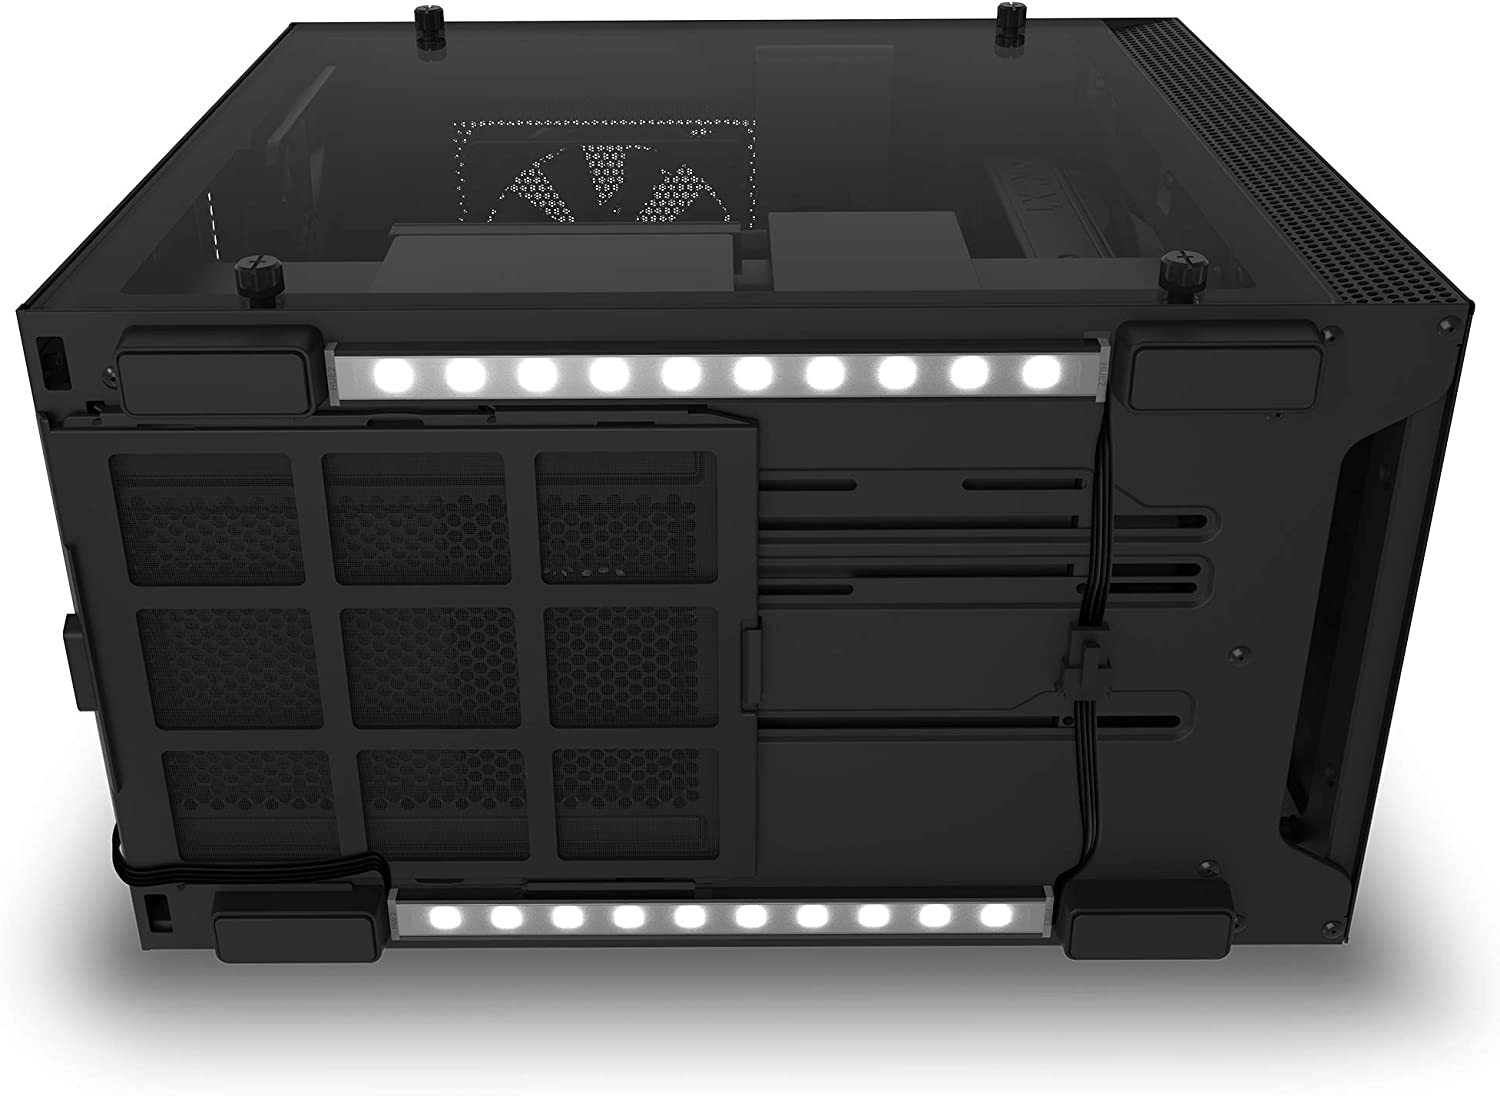 NZXT Underglow Accessory - AH-2UGKK-A1 - Two 300mm RGB LED Strips - 15 LEDs Per Strip - CAM-Powered - Immersive Desktop Lighting System